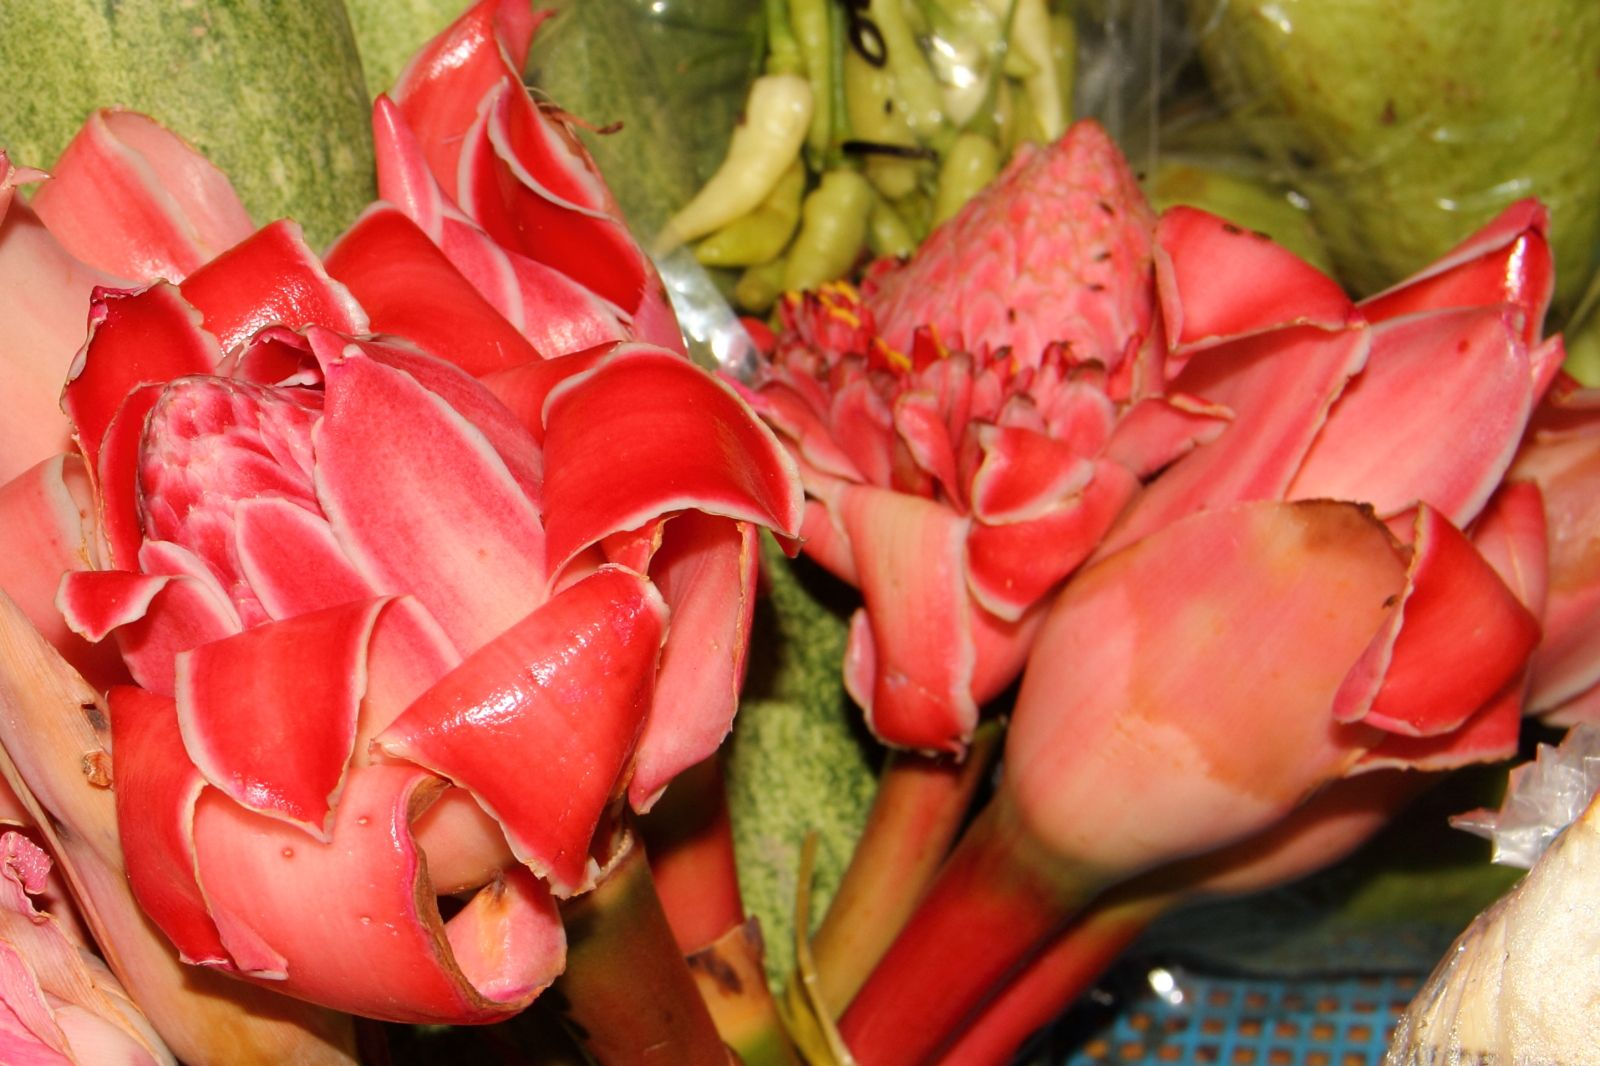 Vegetable Ginger Flower Has A Certain Smell Usually Cooked Or Mixed In Curry And Tom Yam Dishes Ginger Flower Vegetables Yams